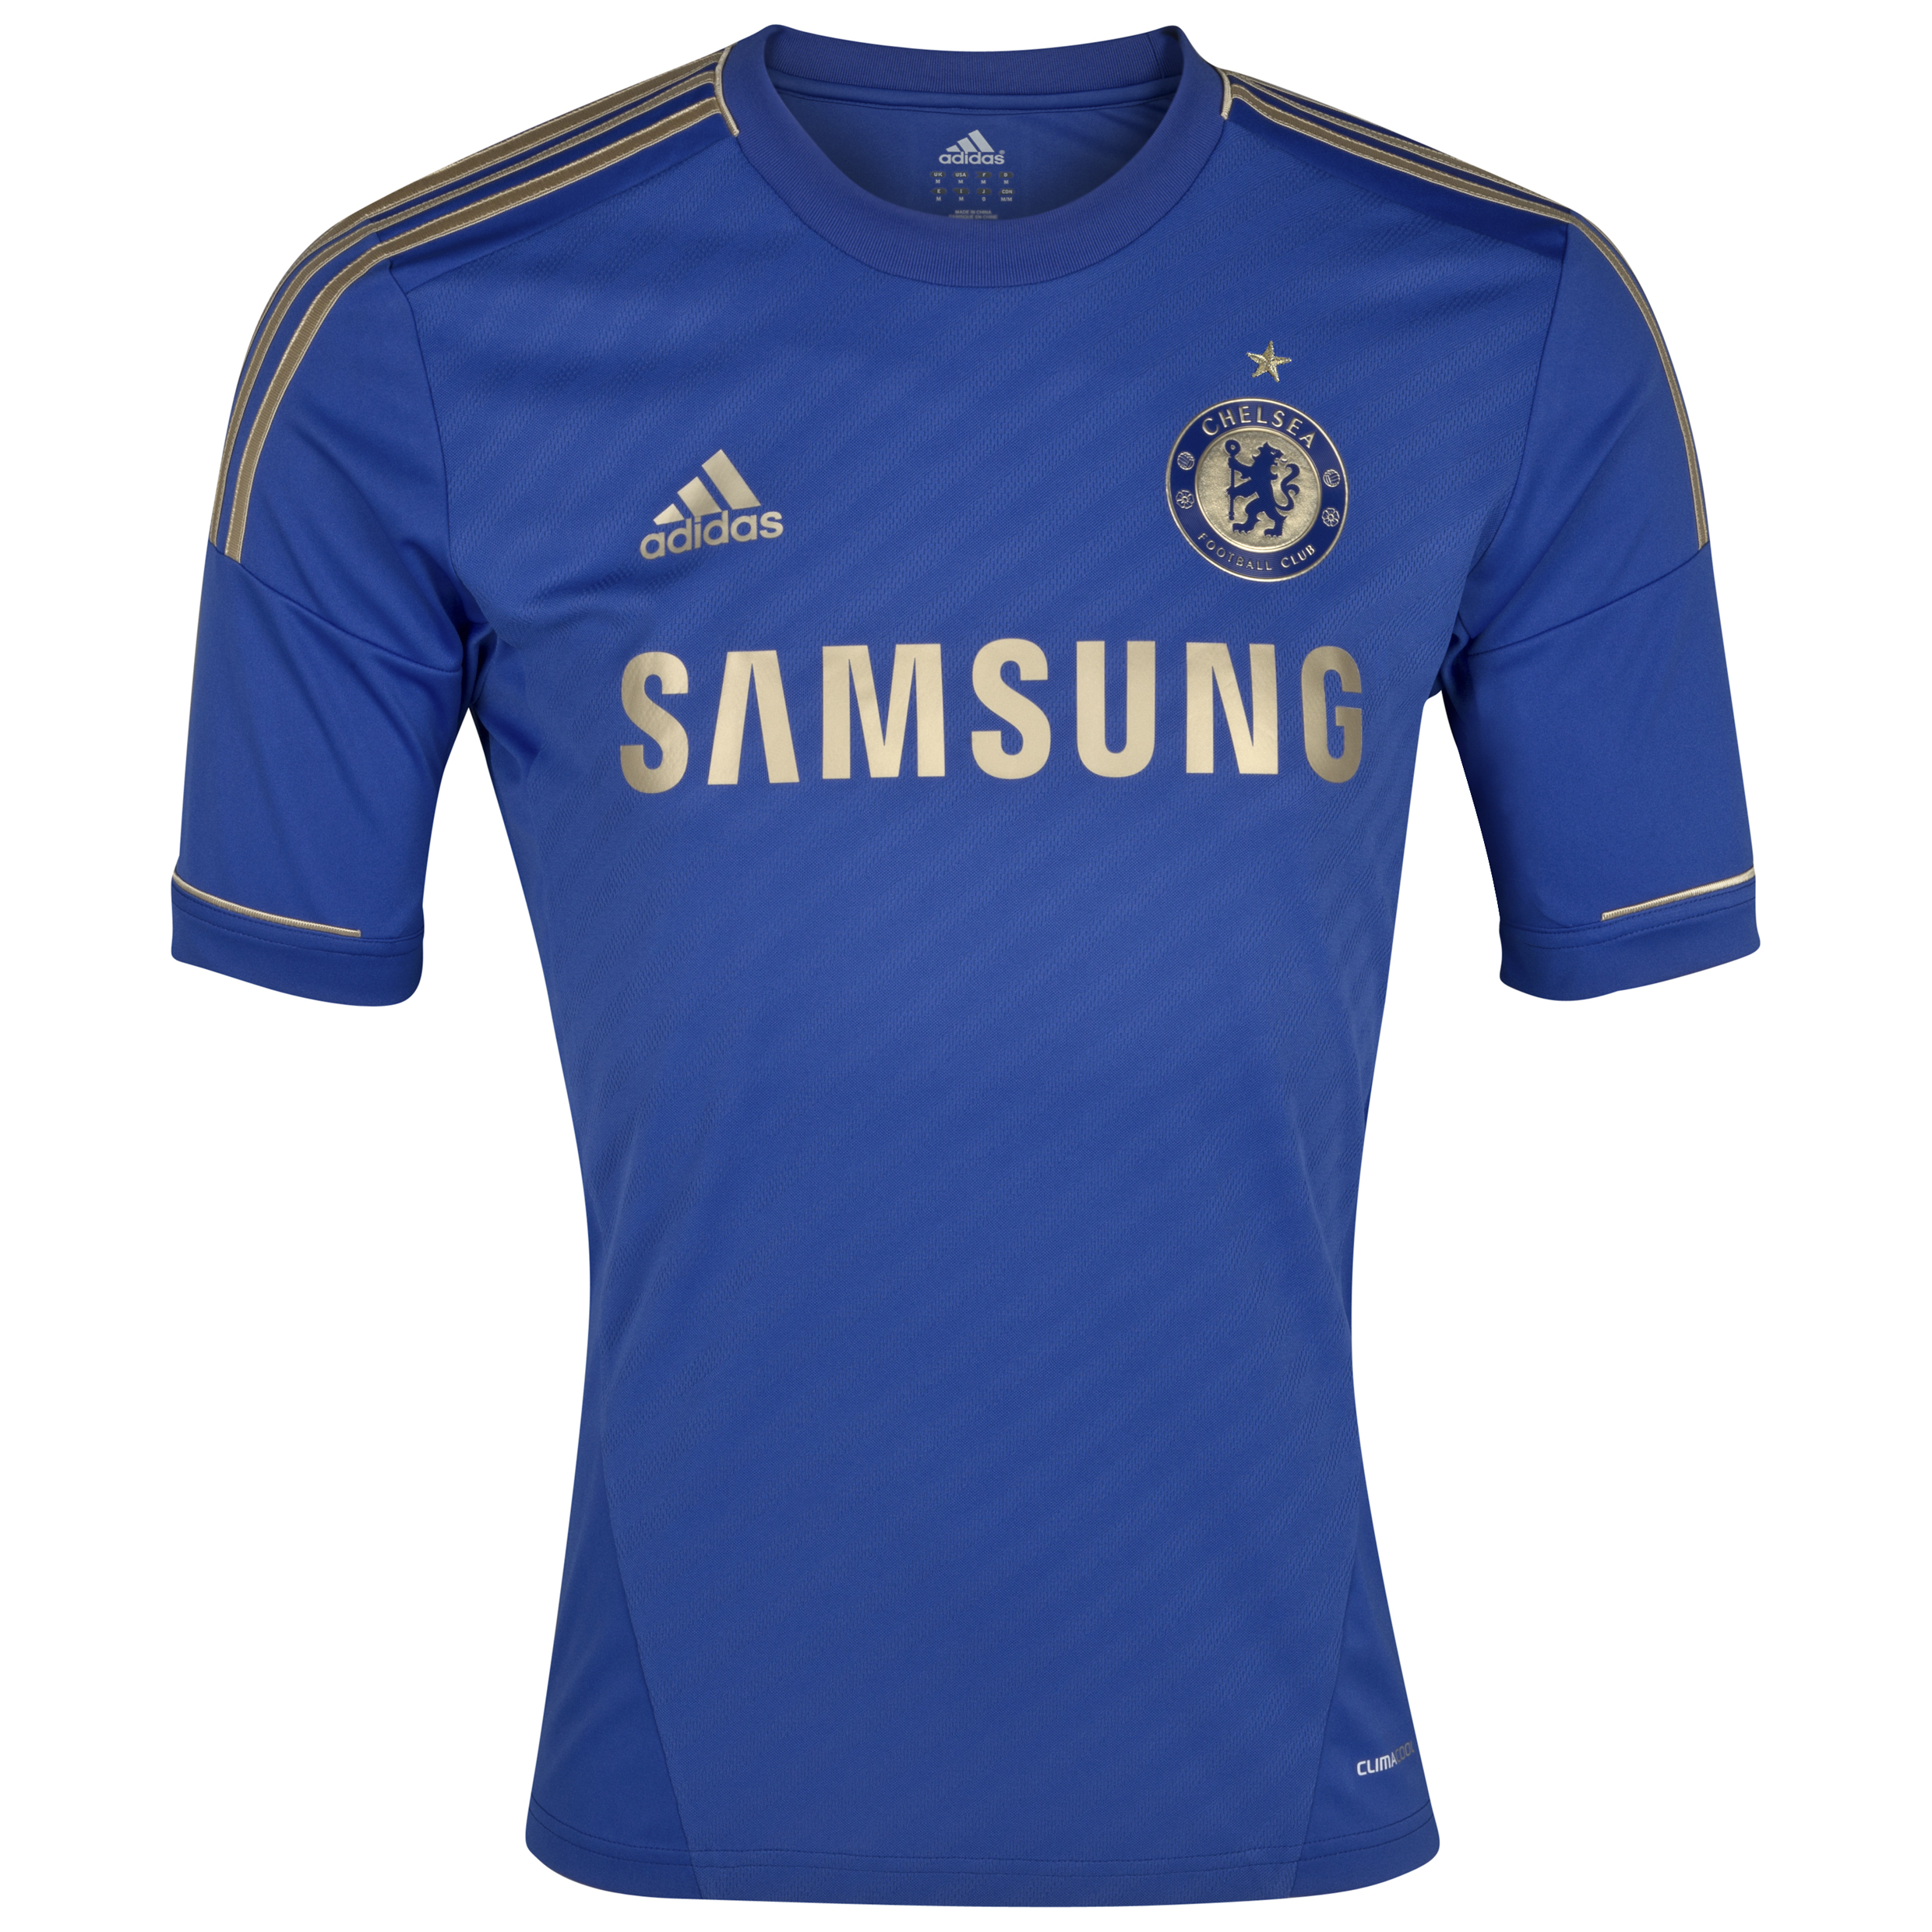 Chelsea Home Shirt 2012/13 - Kids Including Gold Star